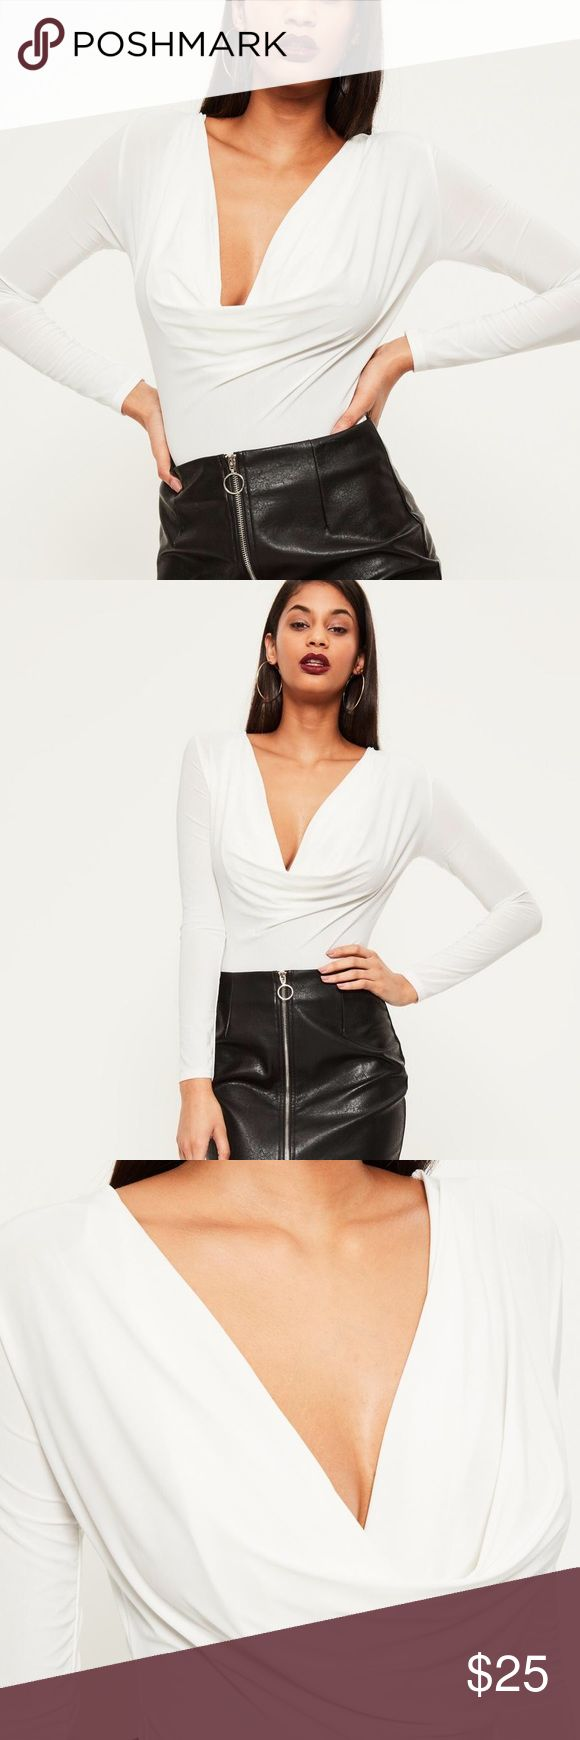 Missguided Cowl Neck Plunge Bodysuit 4 New Missguided white cowl neck plunge Bodysuit. Size 4. Missguided Tops